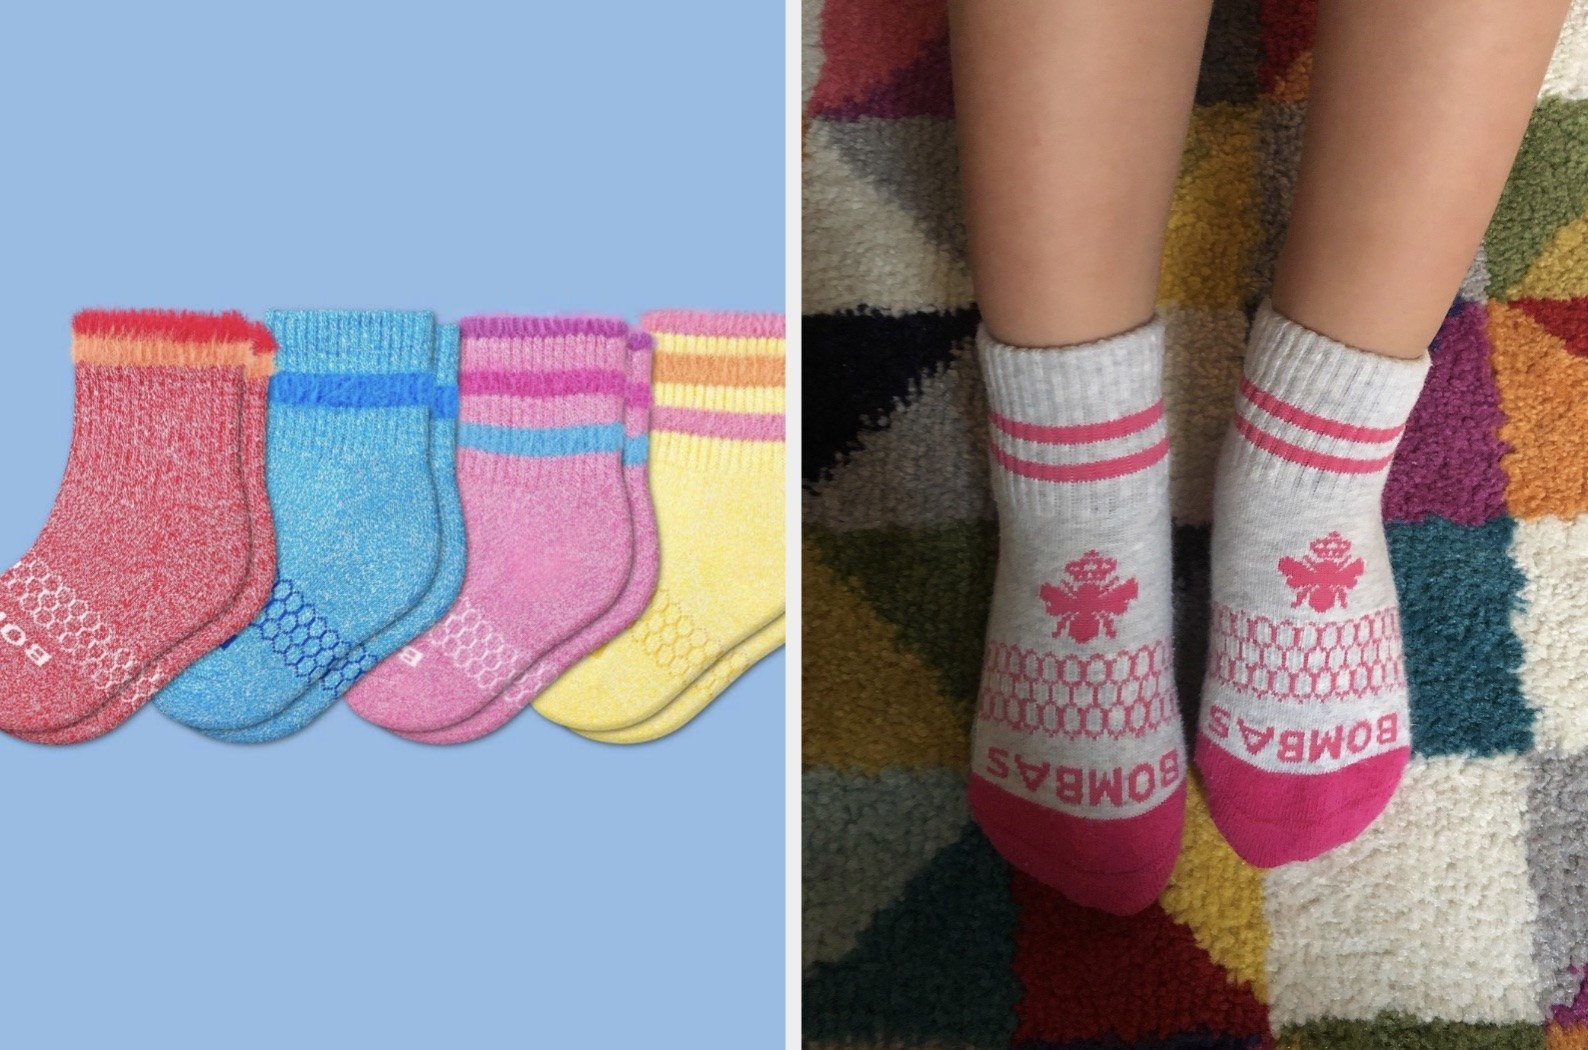 A toddler's feet with pink and gray Bombas socks on them